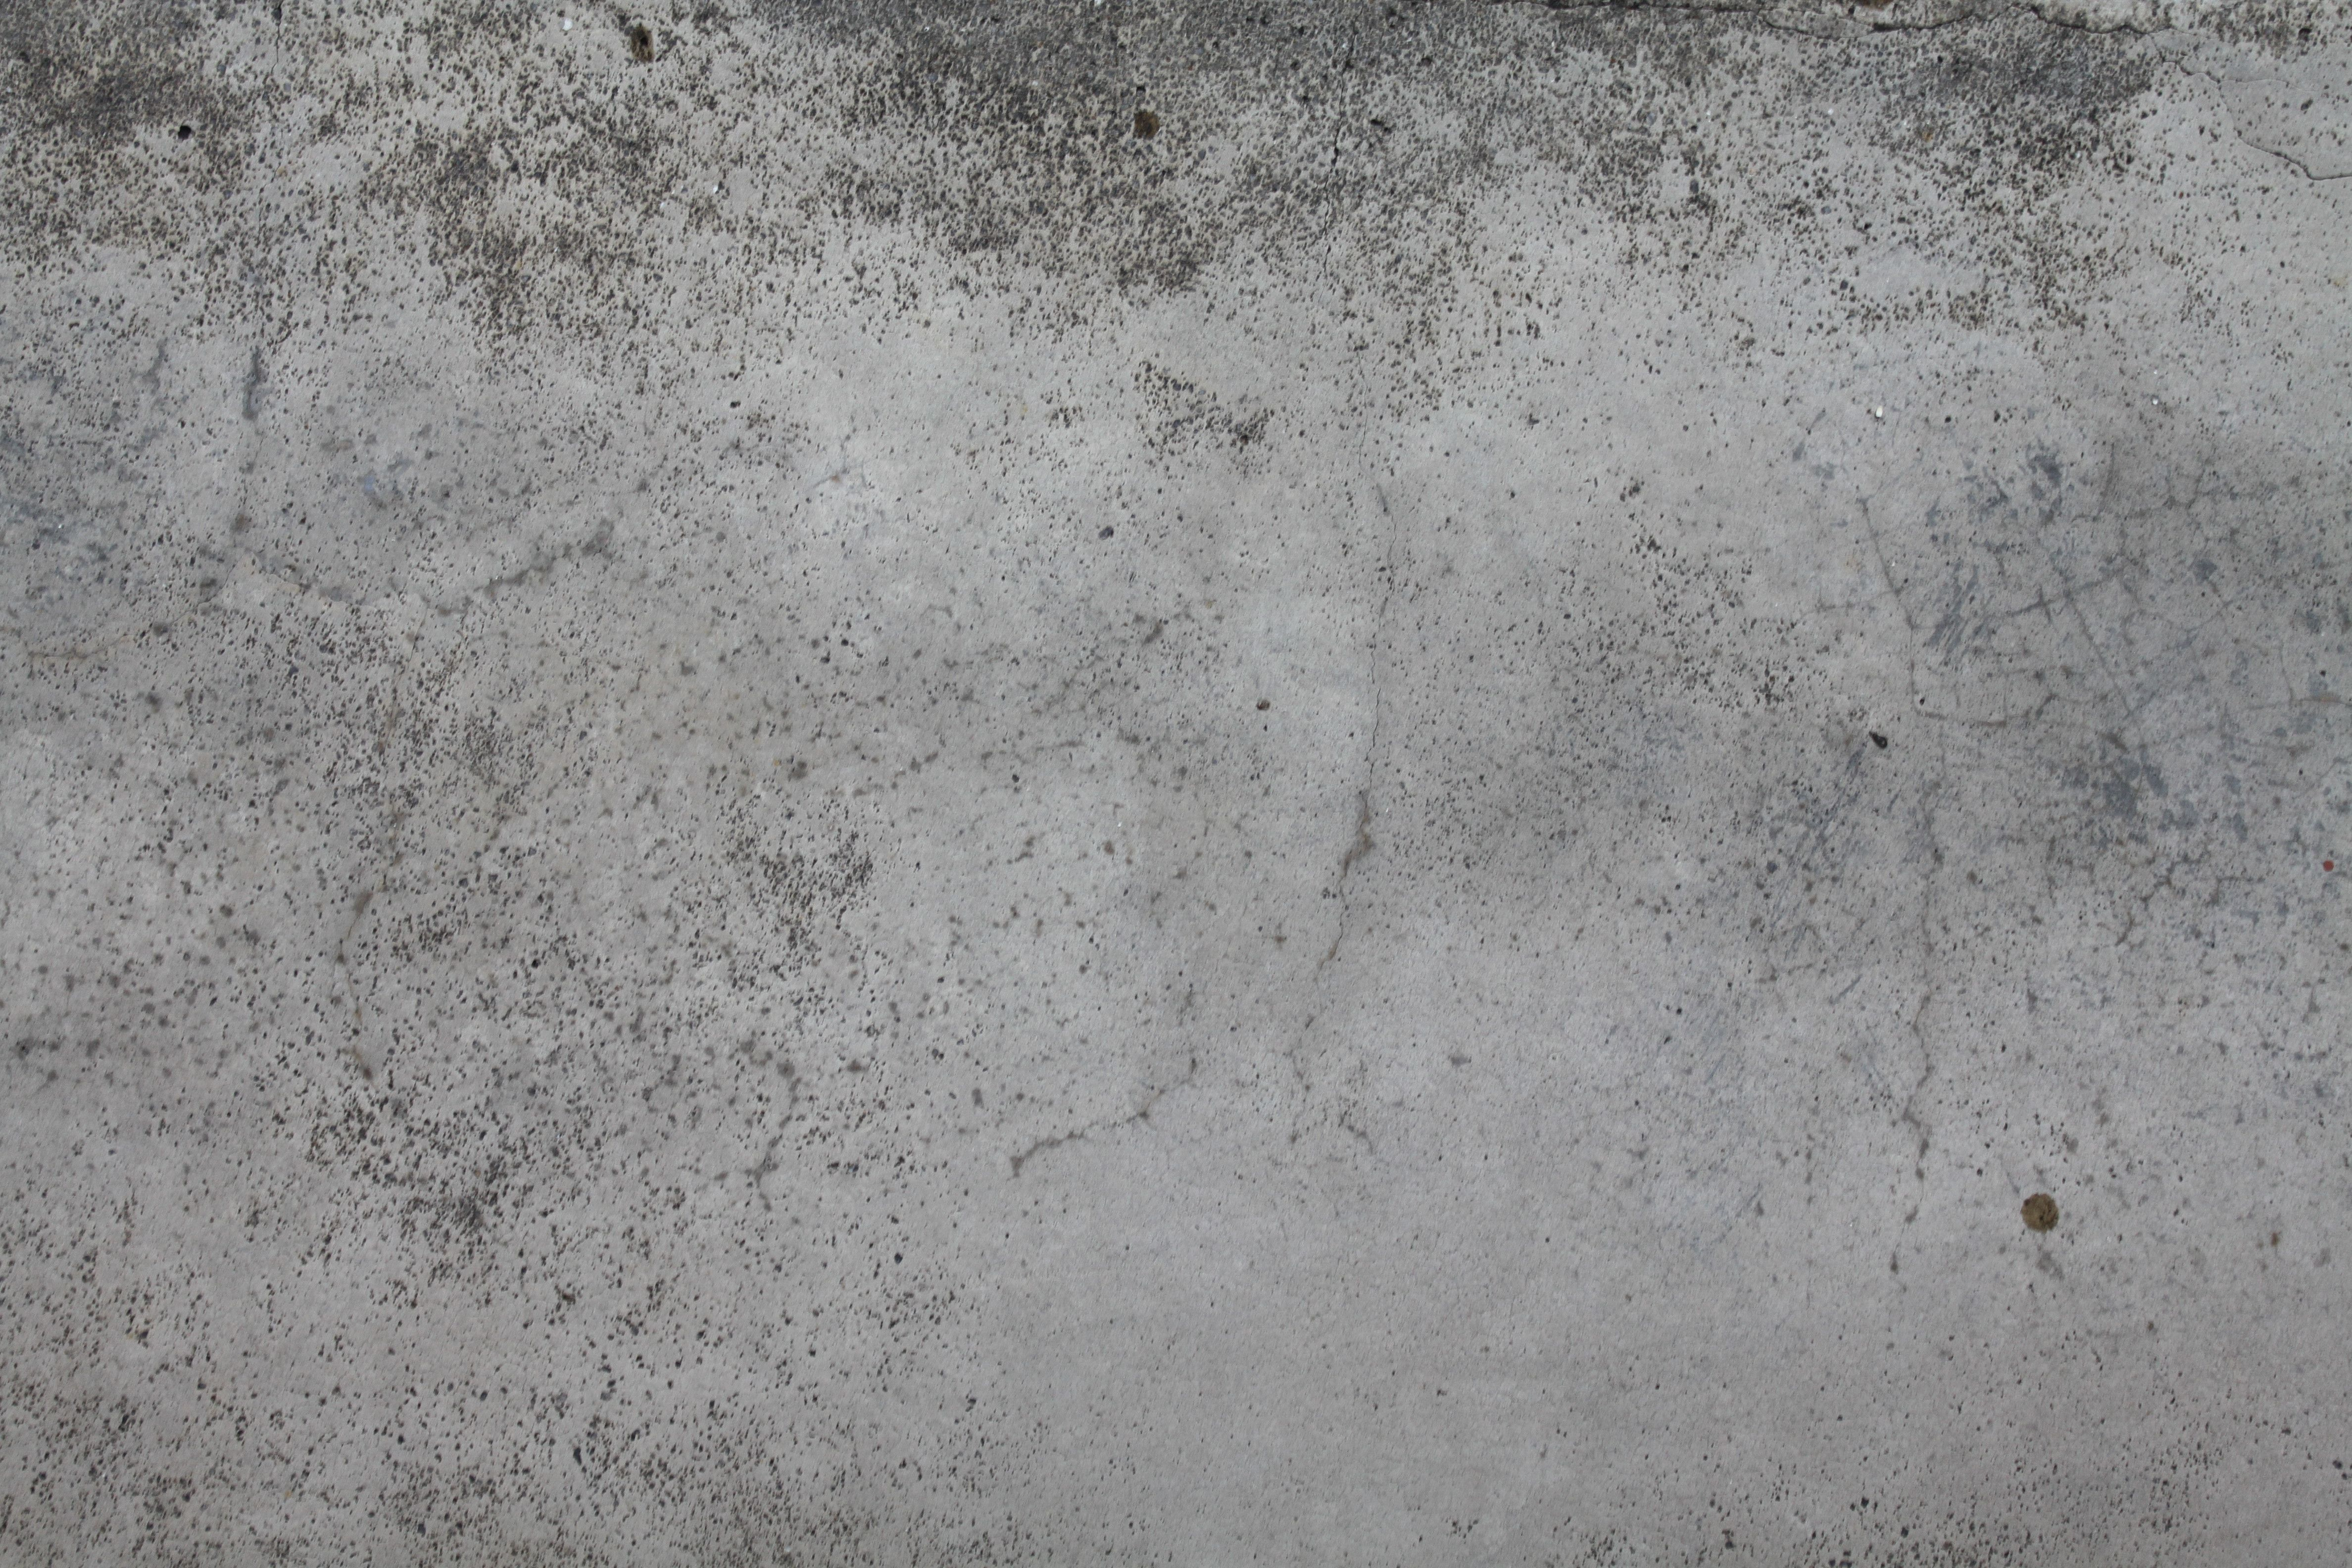 Texturing Concrete Walls Cement Texture Yahoo Image Search Results Typo